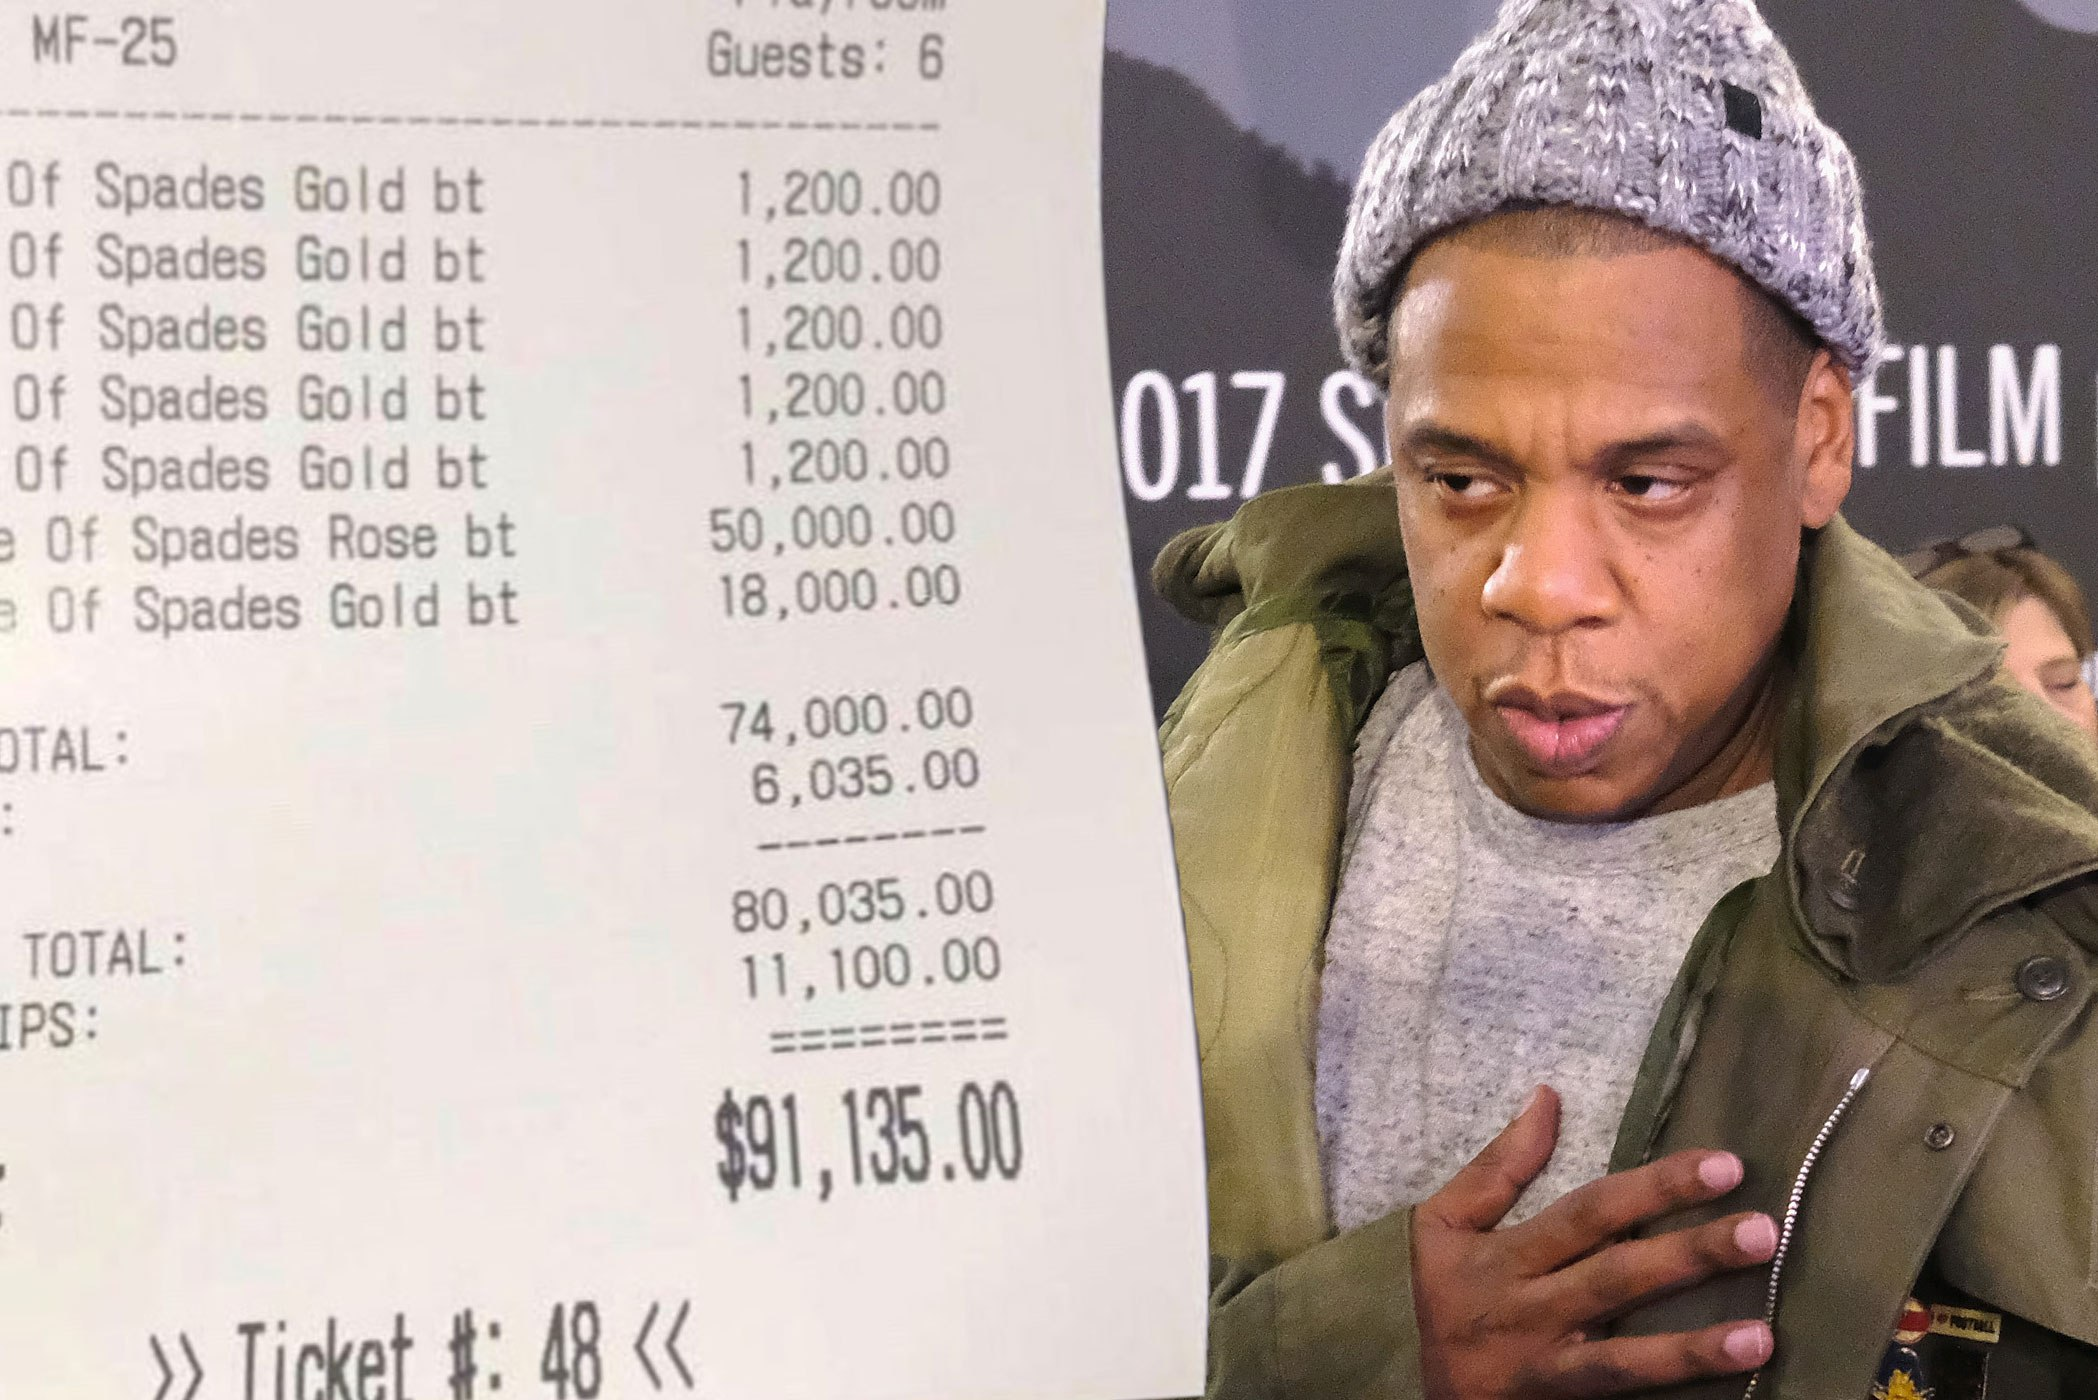 Jay-z Spends N32m On Drinks, Tips Waitress N3.9m photo